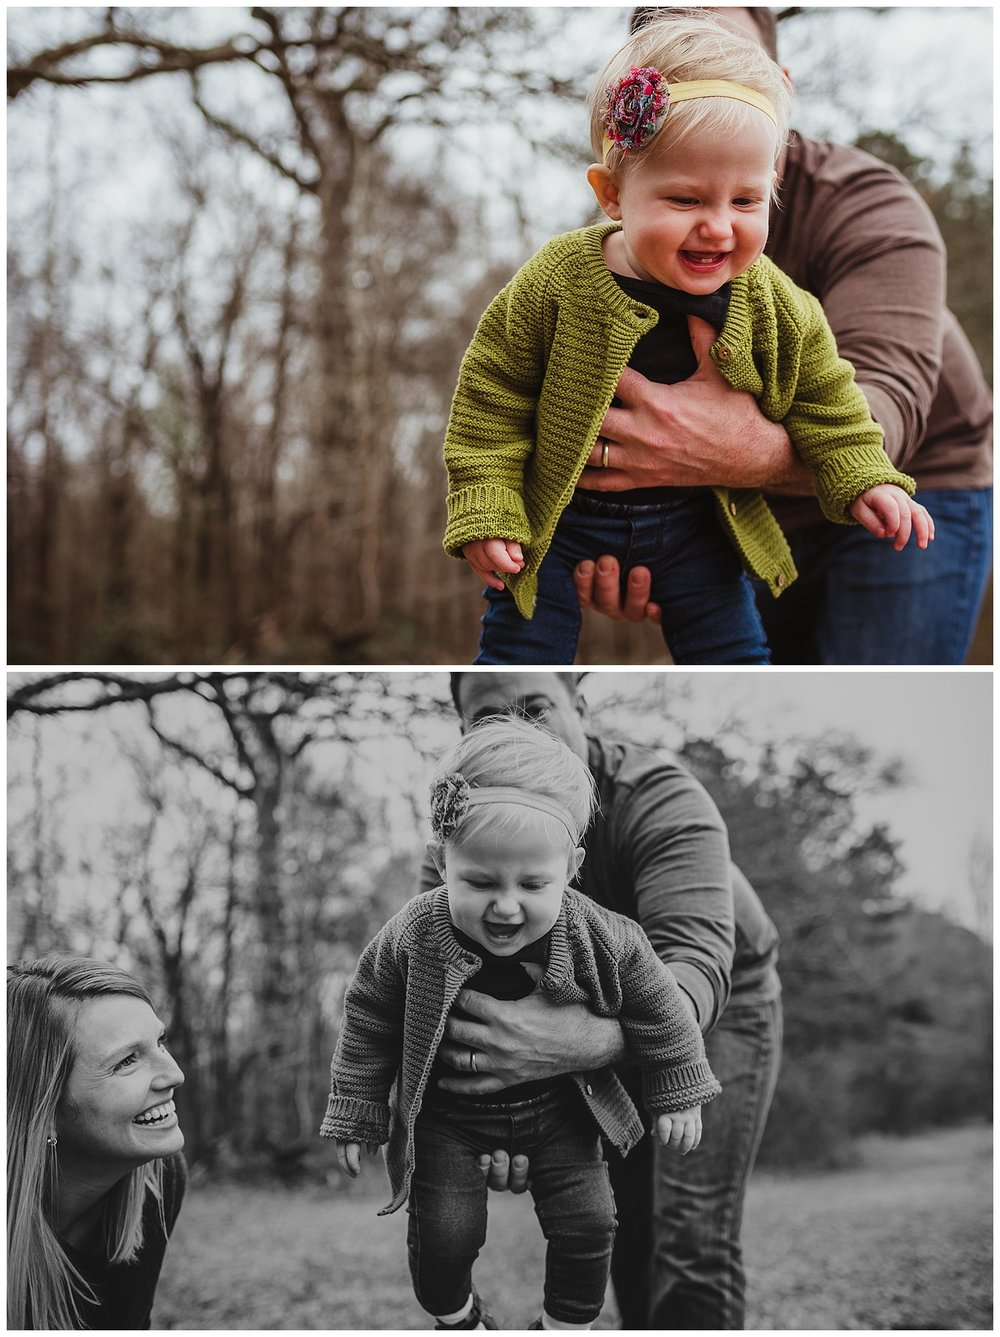 The baby laughs as her dad swings her in the air during their family photo shoot in Wake Forest, North Carolina.